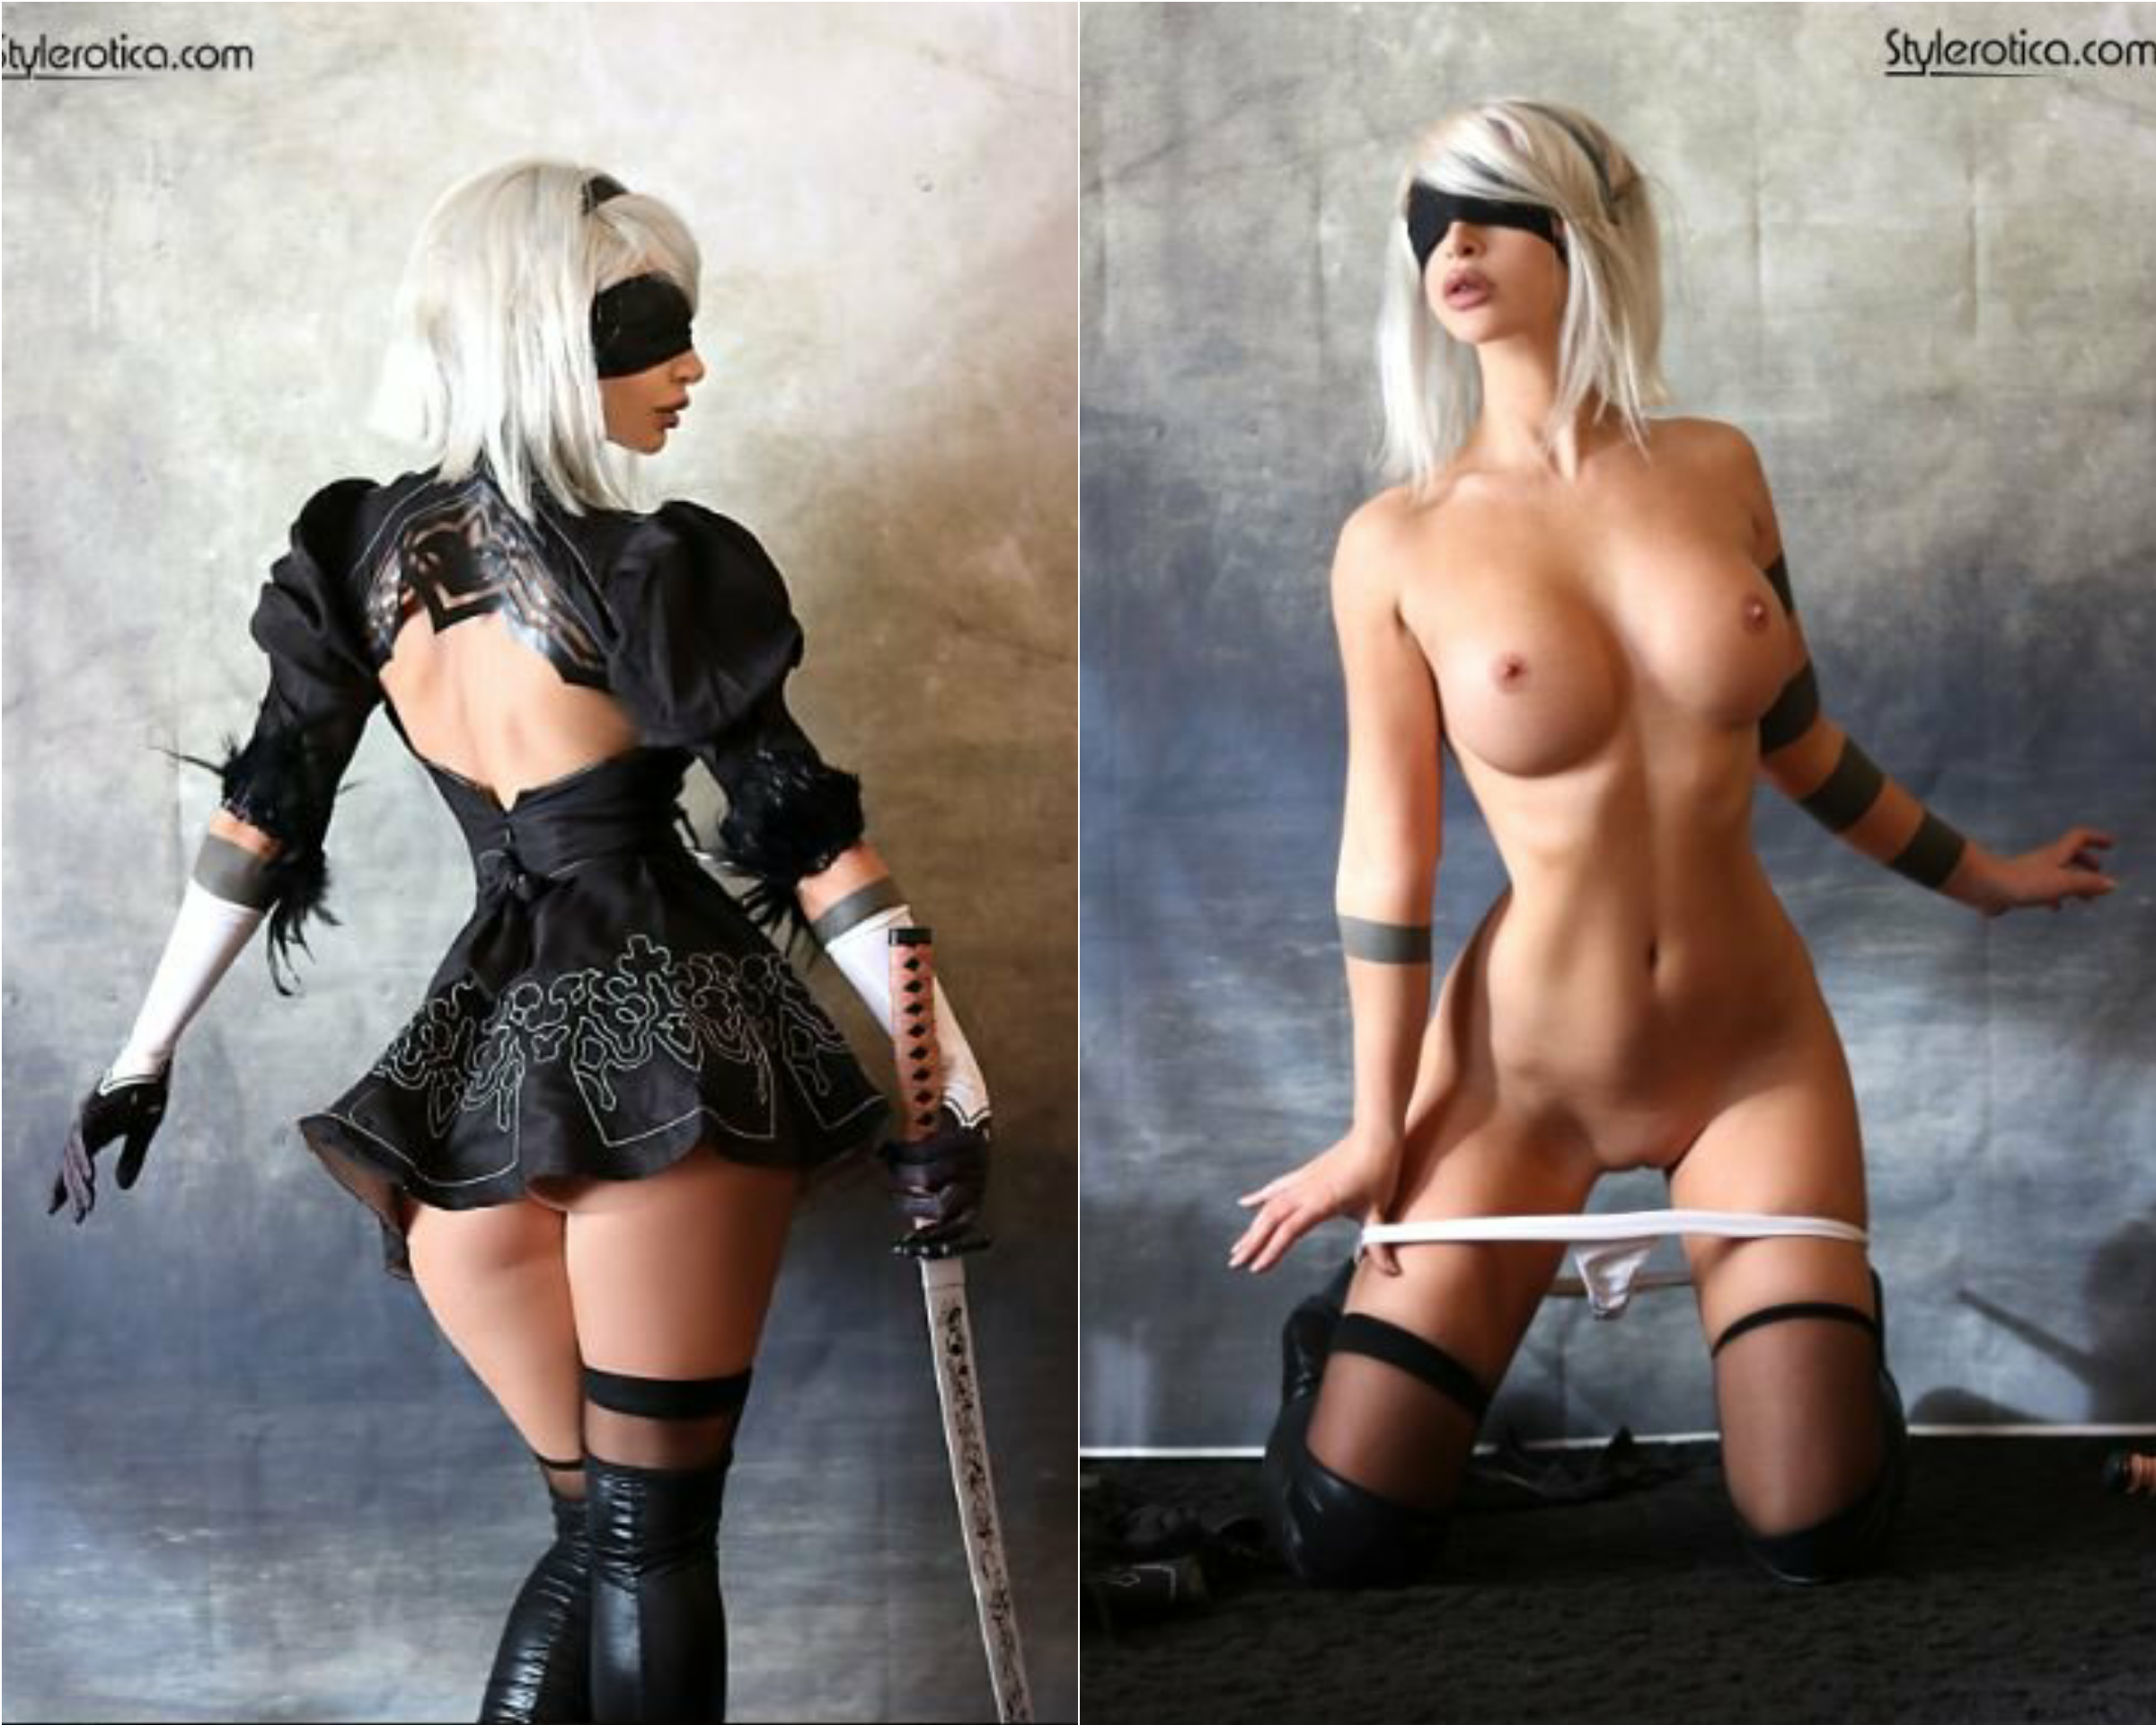 2B On/Off Cosplay By Kato